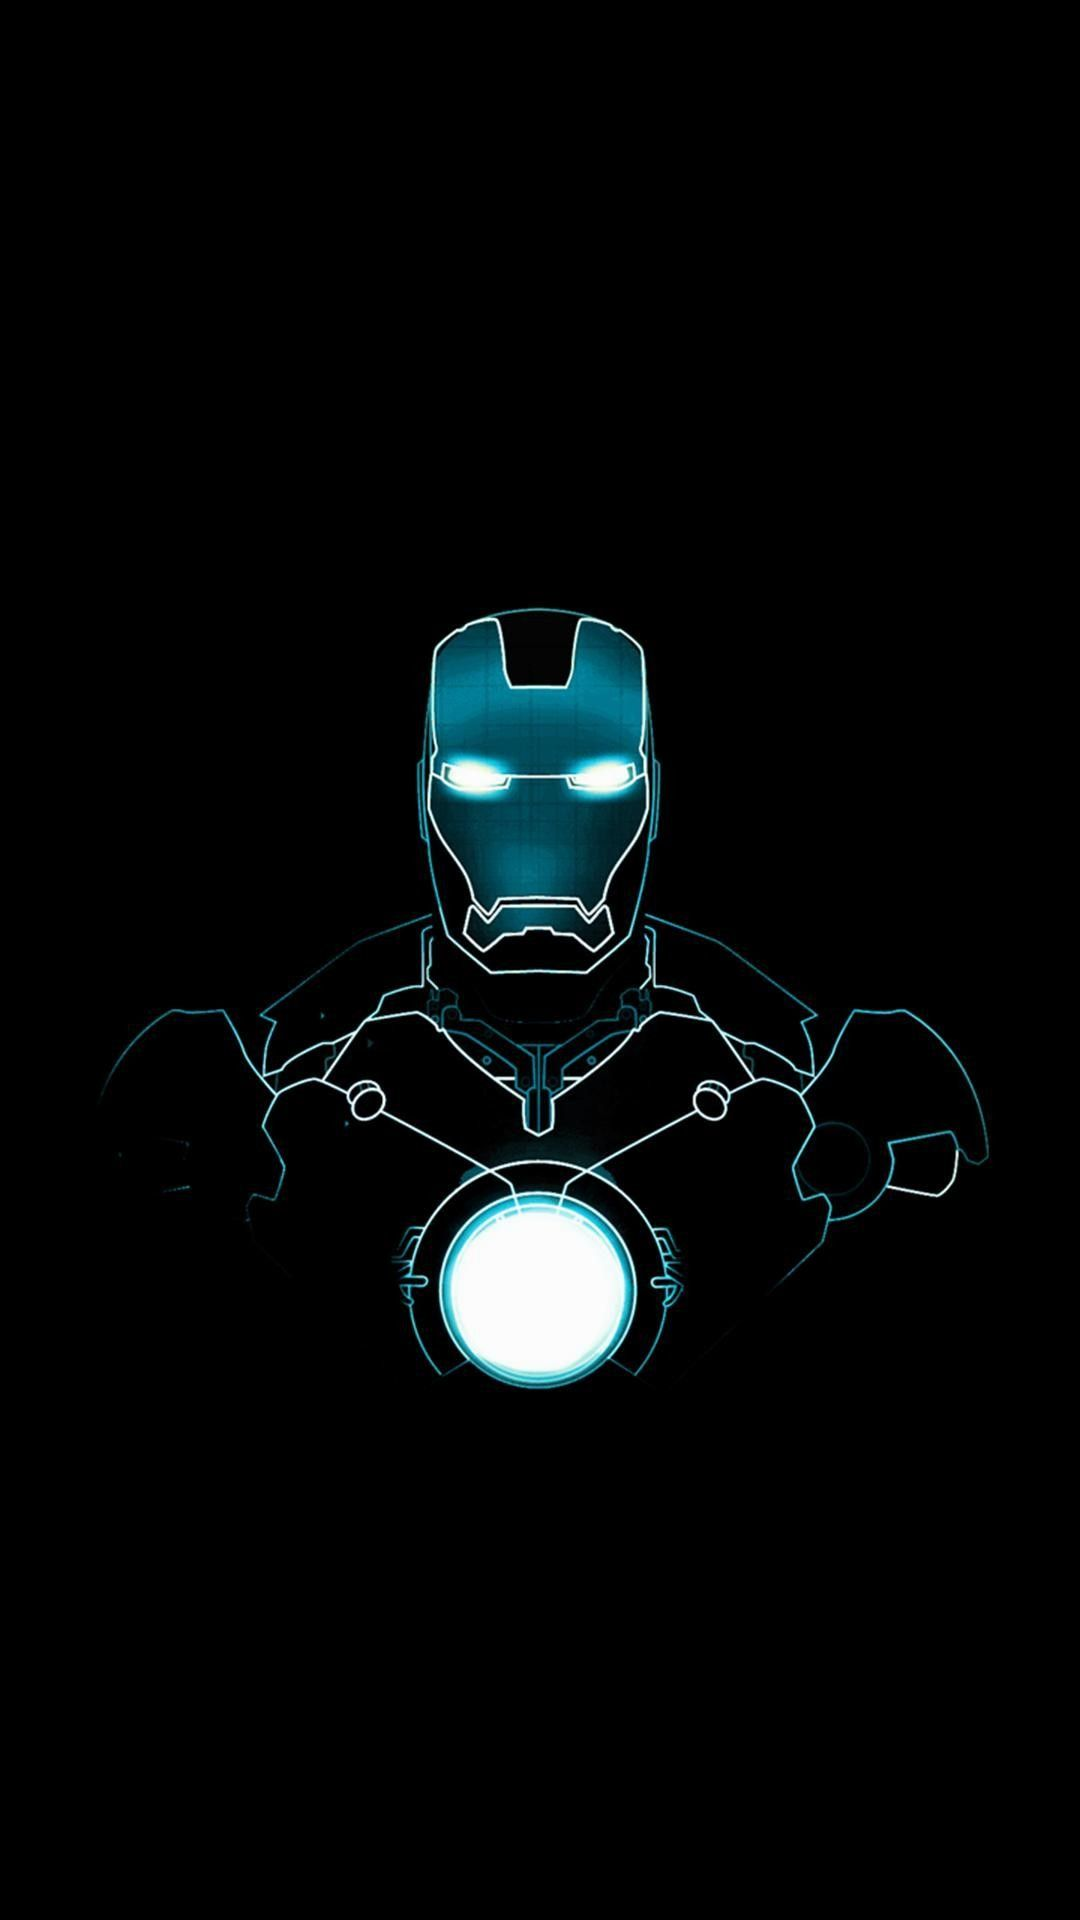 1080x1920 Wallpaper Wiki Iron Man 1080 X 1920 Background Iron Man Wallpaper Ironman Wallpaper Iphone Man Wallpaper